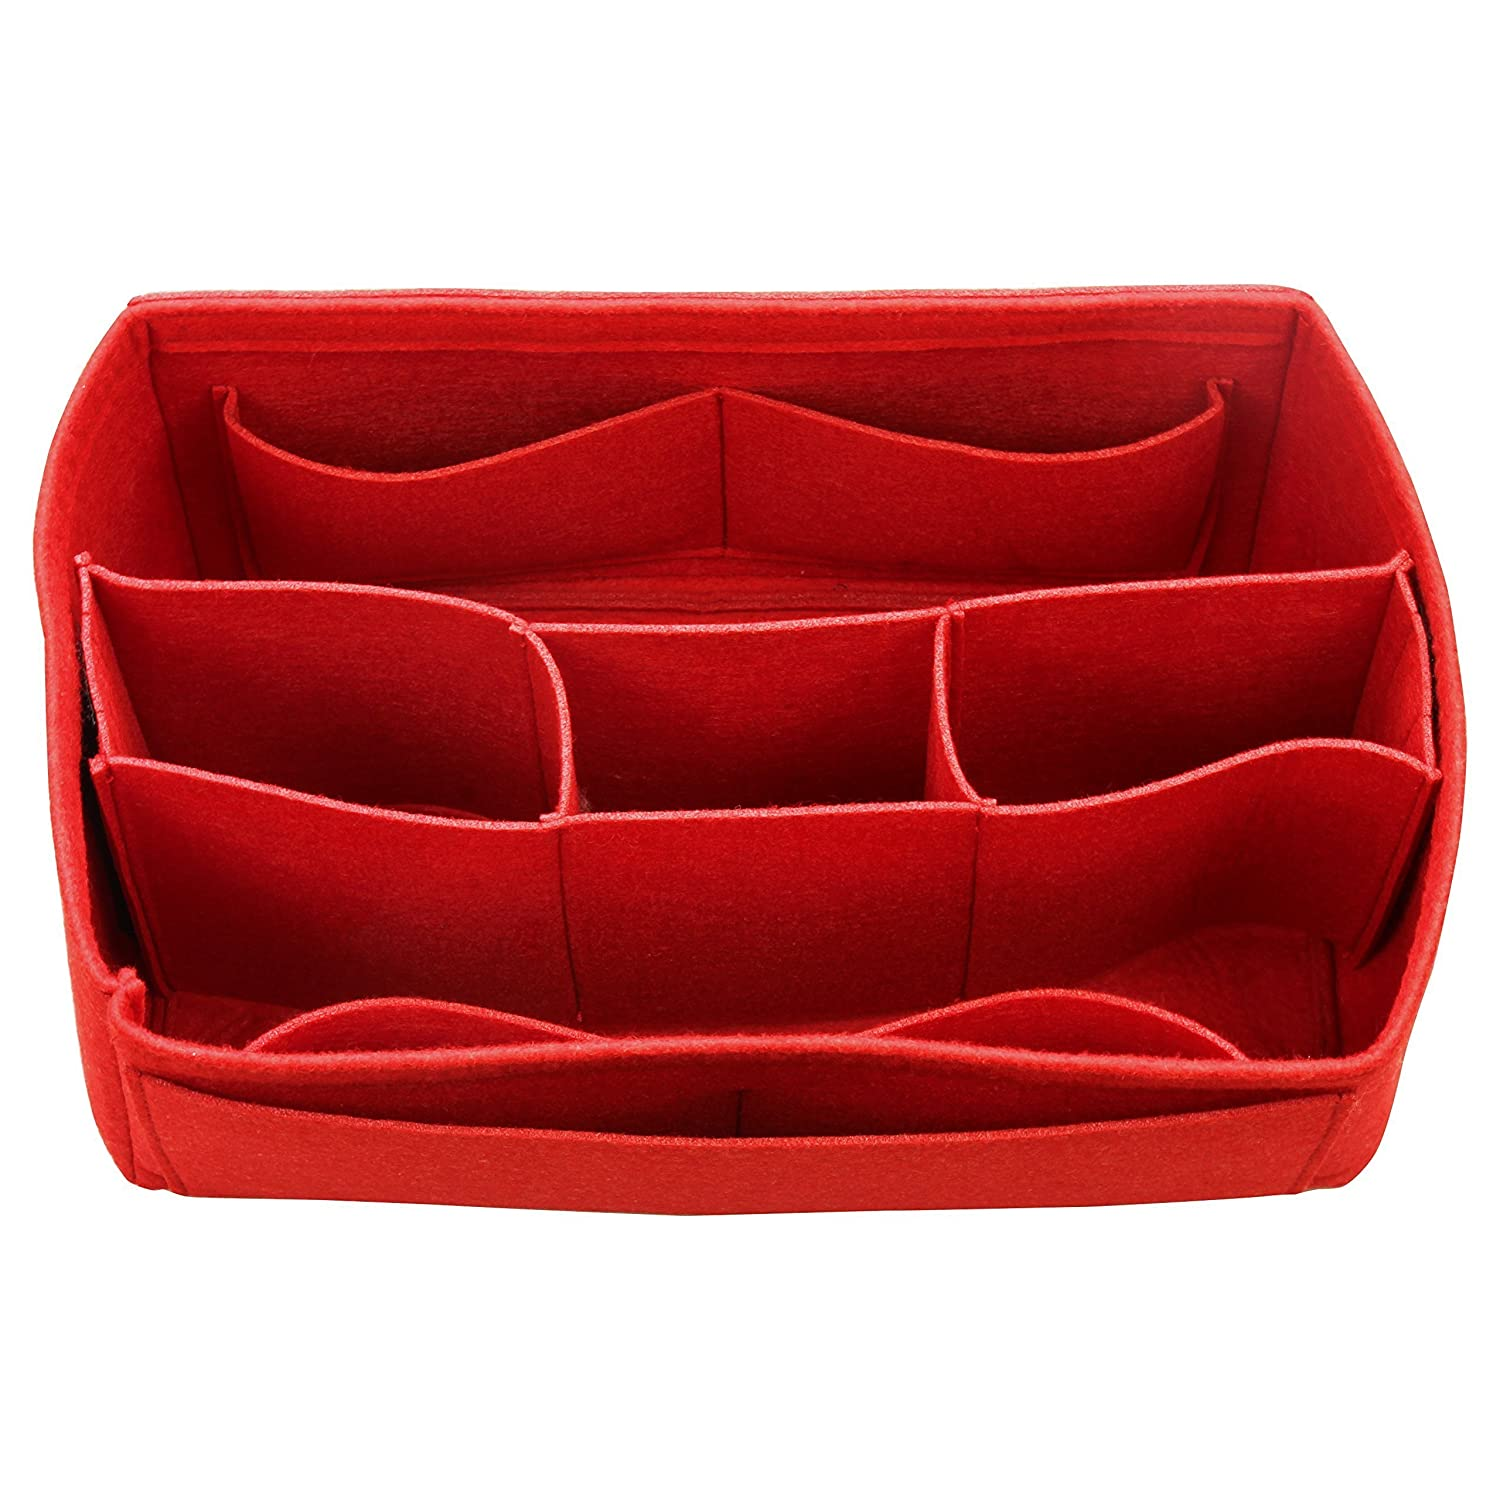 [Fits Graceful MM, Red] Felt Organizer (with Detachable Middle Compartments), Bag in Bag, Wool Purse Insert, Customized Tote Organize, Cosmetic Makeup Diaper Handbag